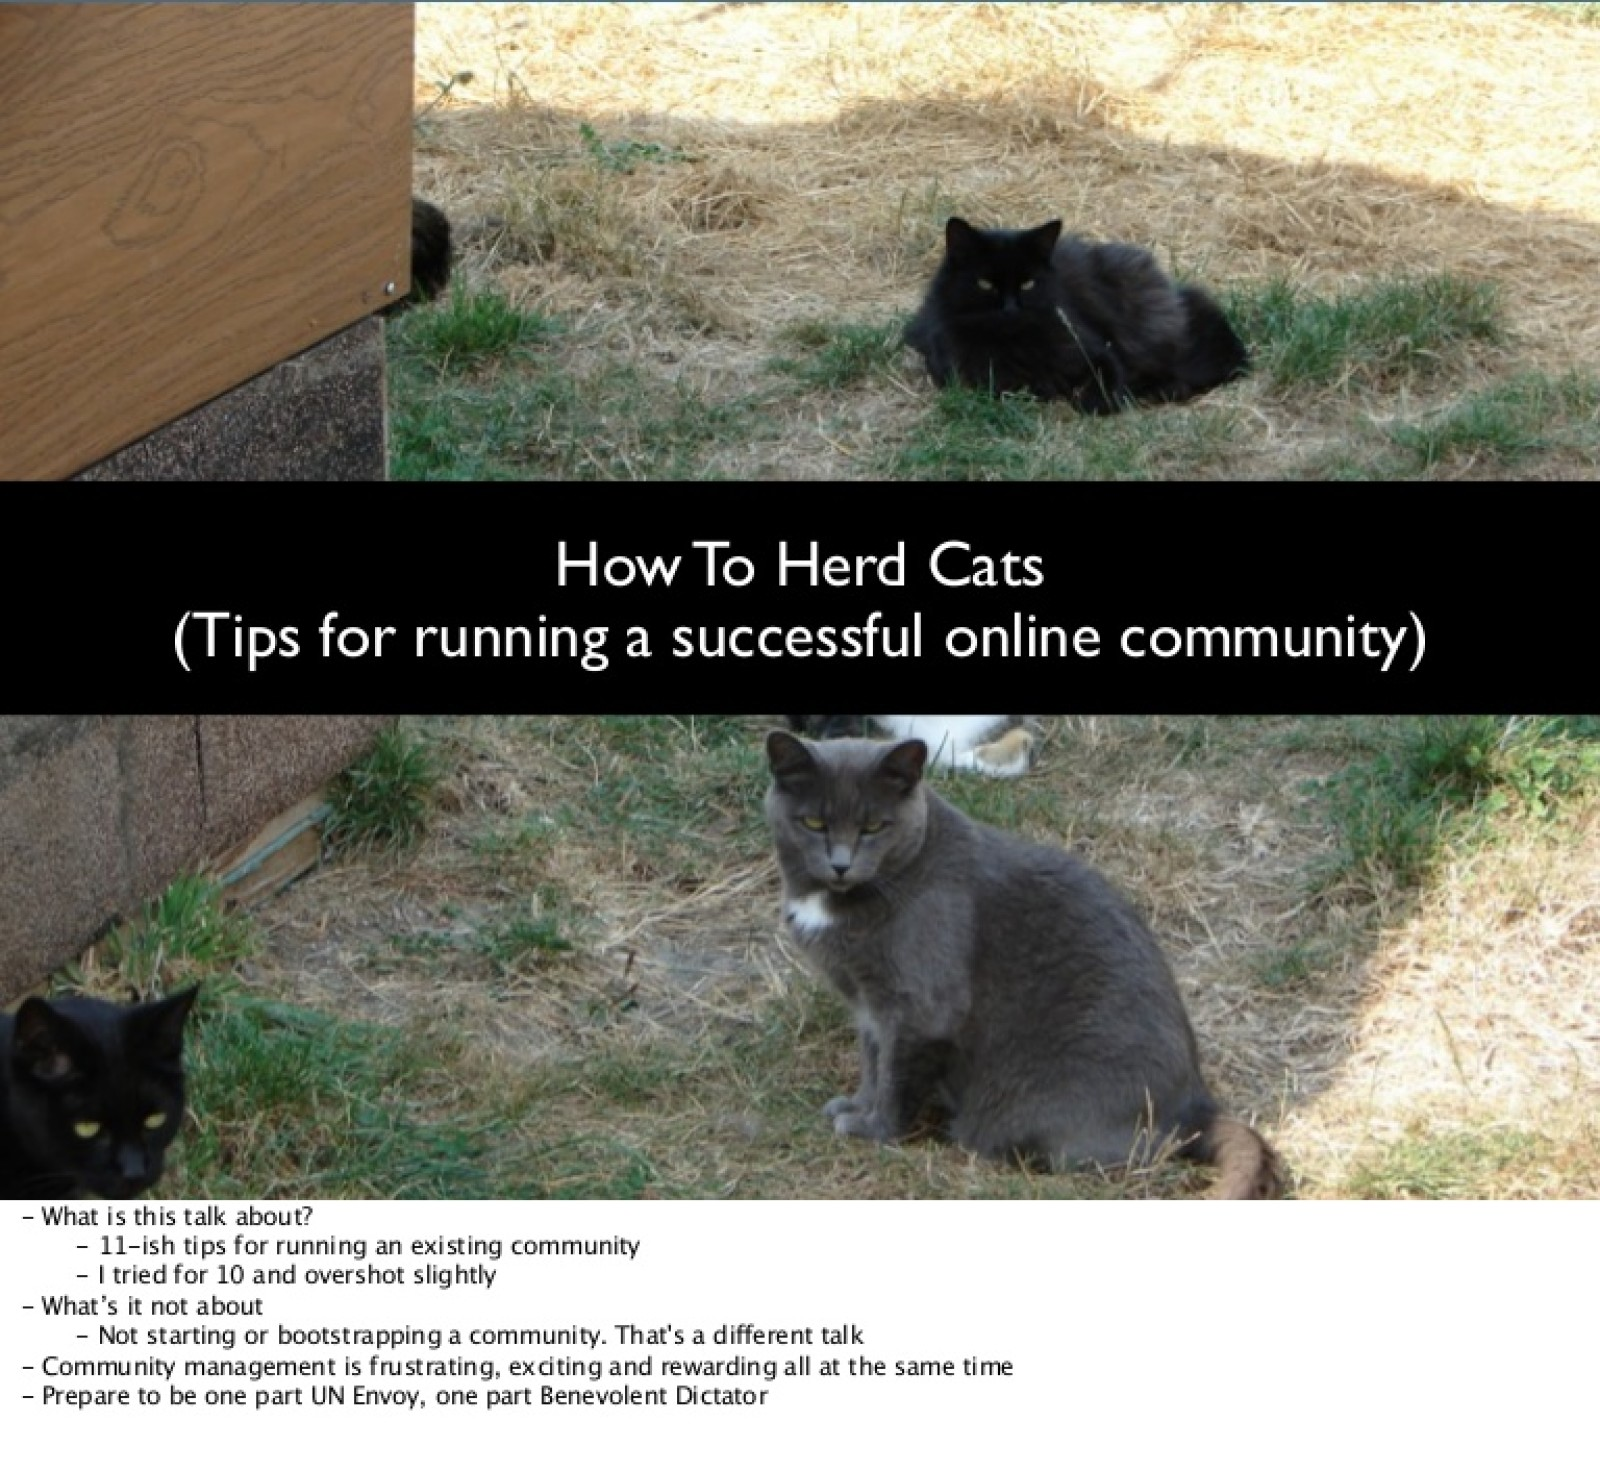 How To Herd Cats (tips on running a successful online community)